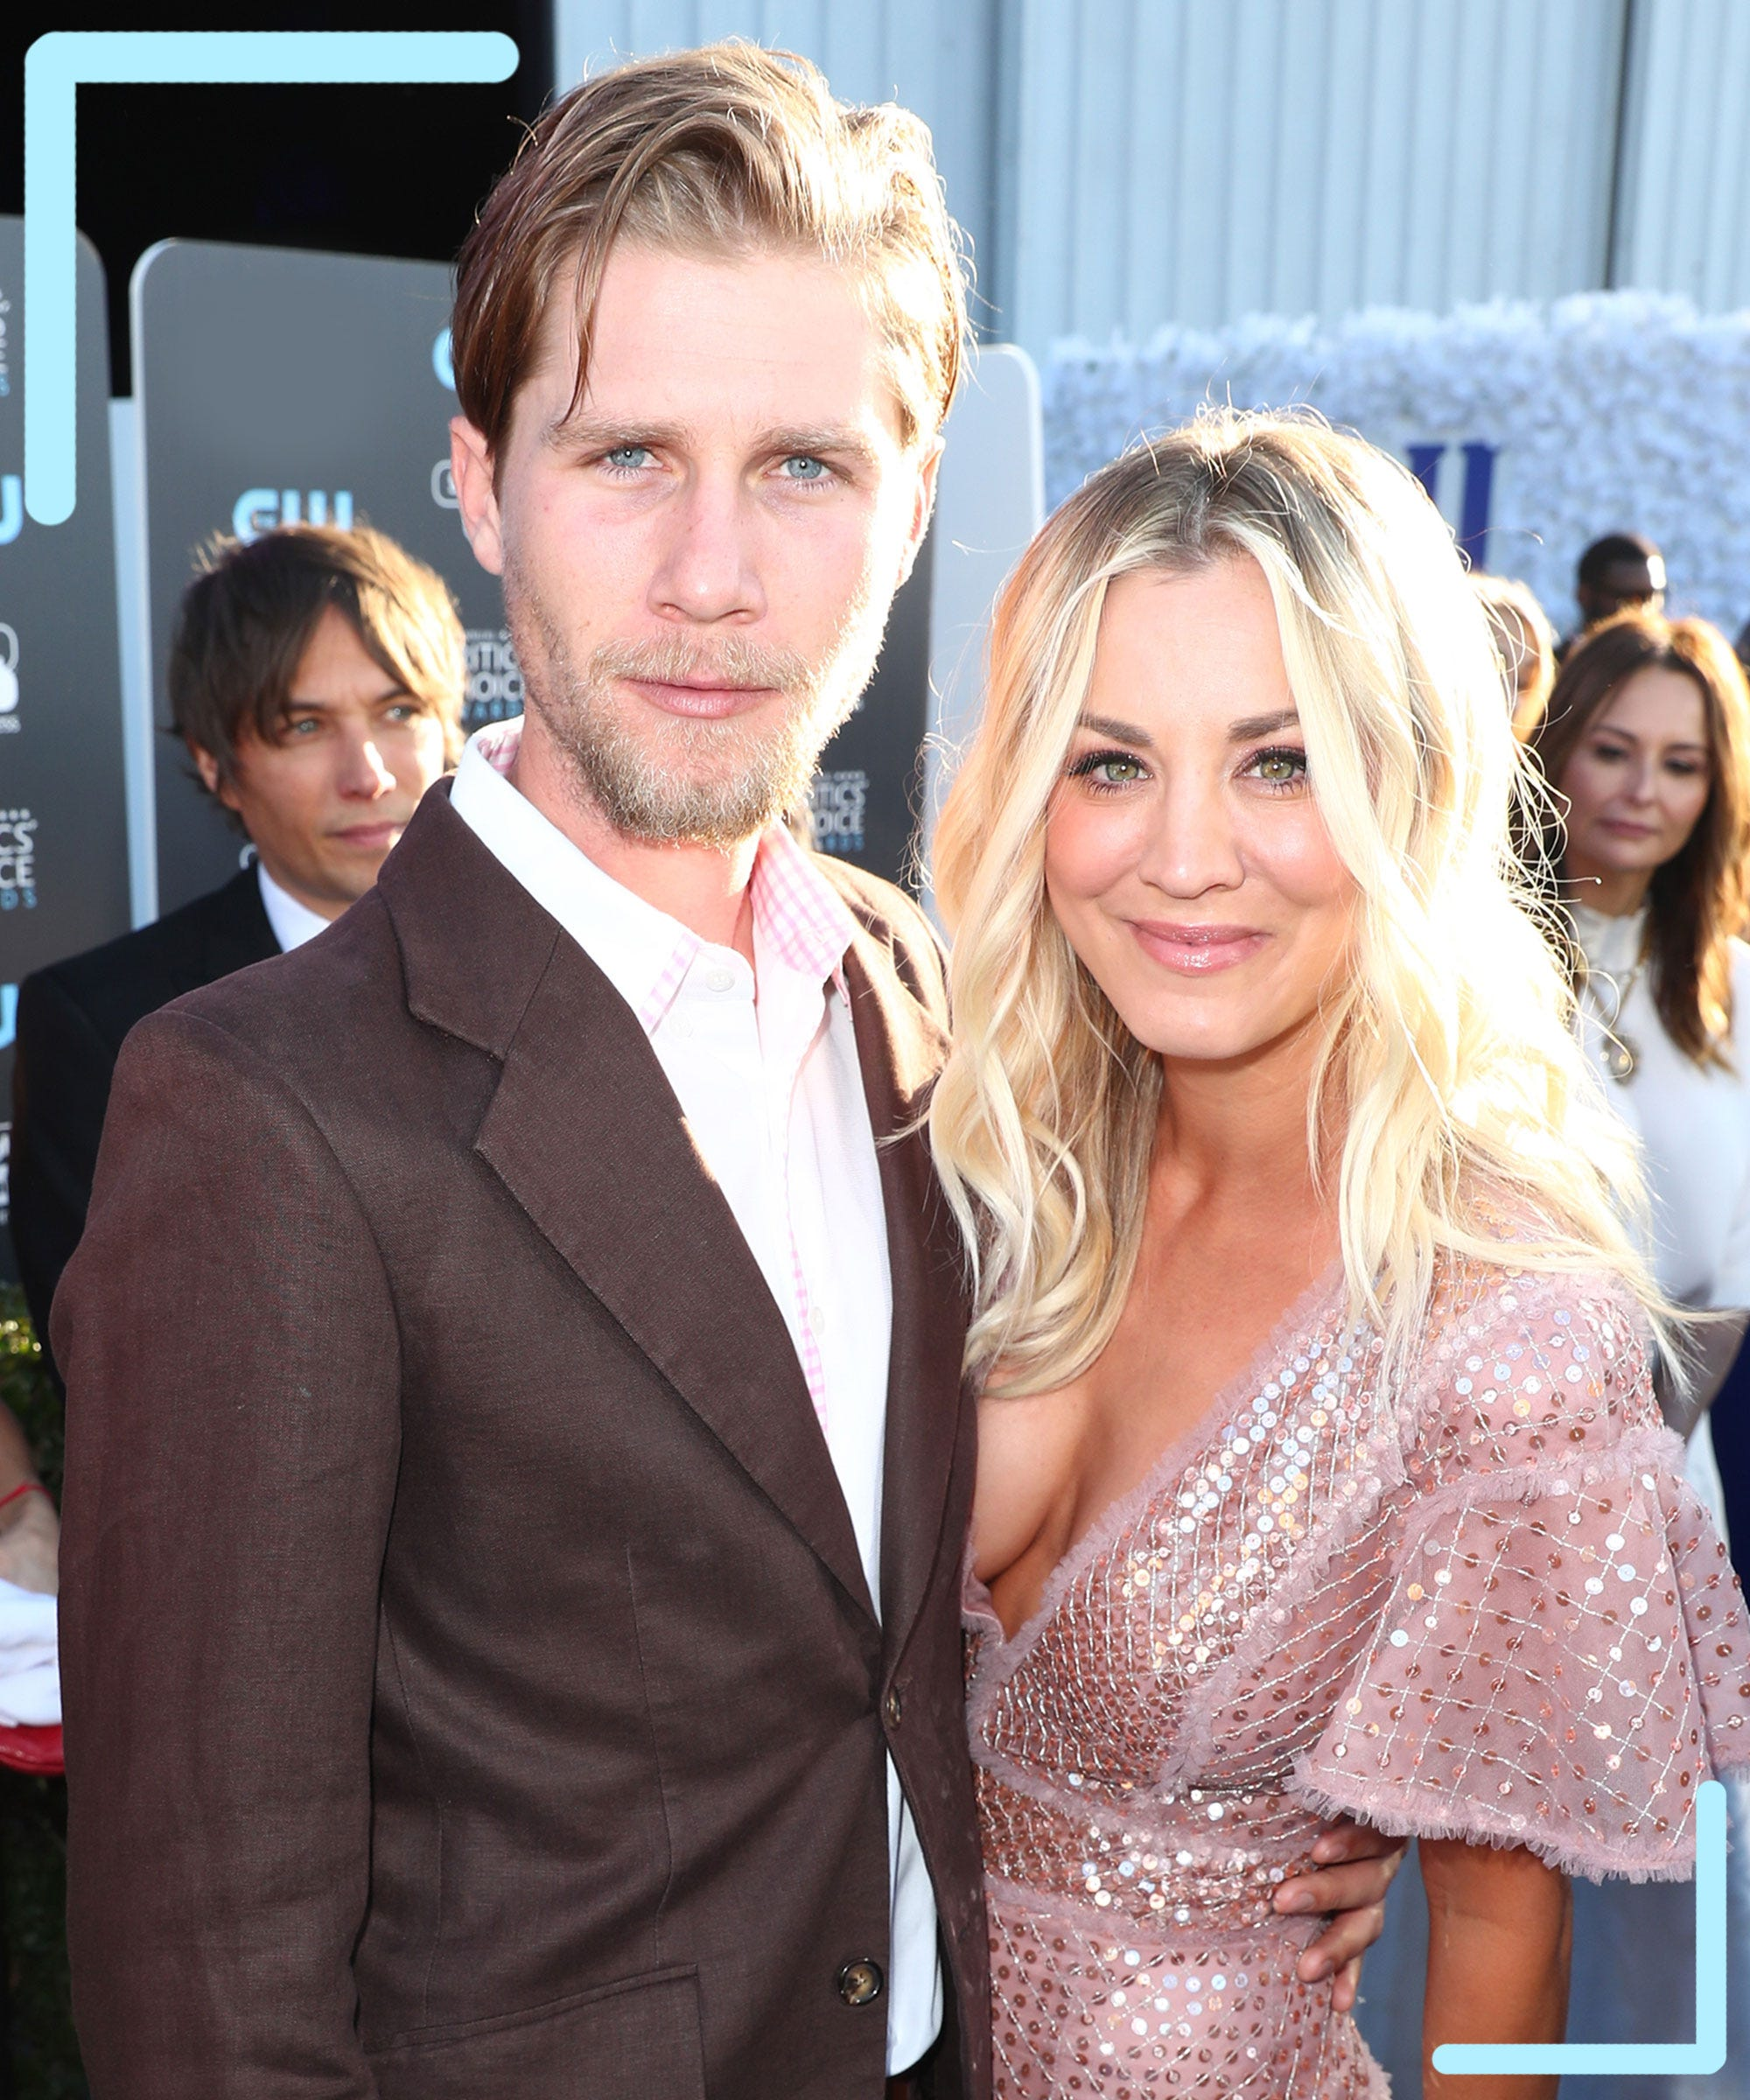 Kaley Cuoco Opens Up About Not Living With Her Husband